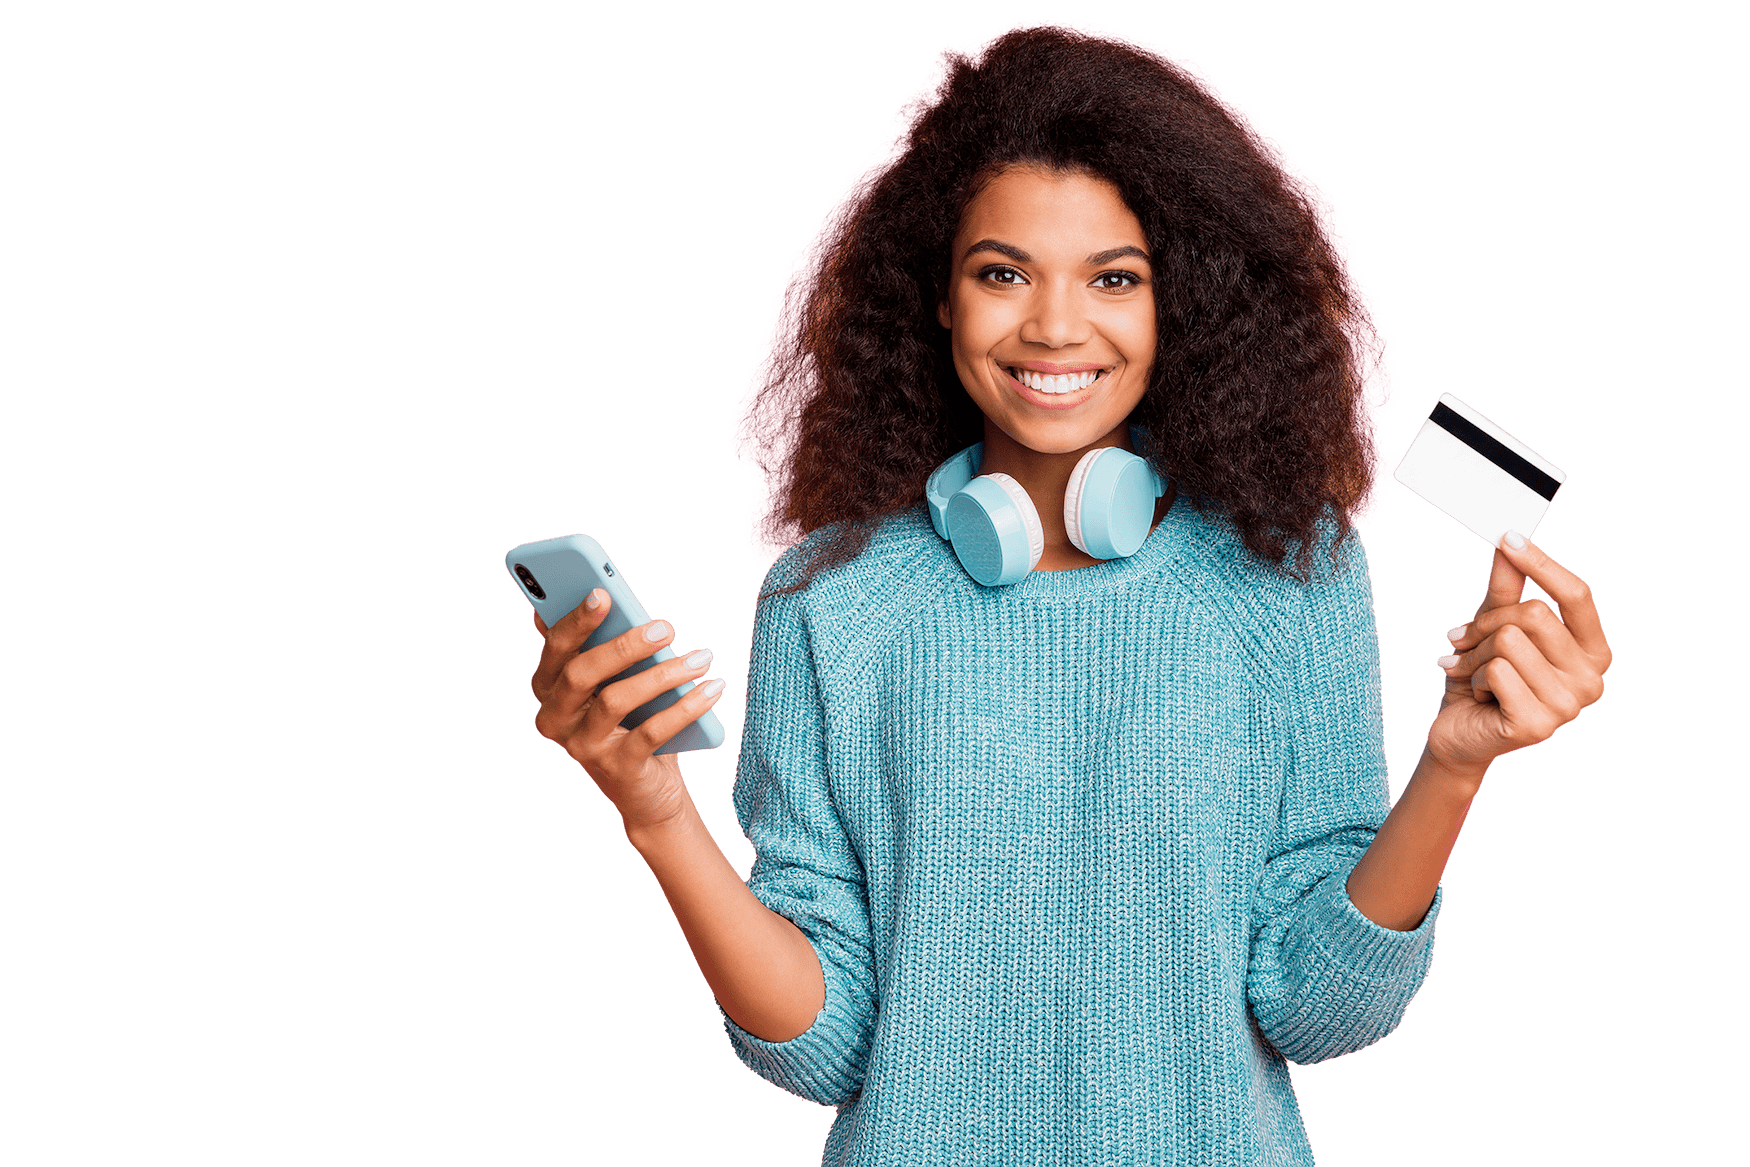 Girl holding cell phone and credit card